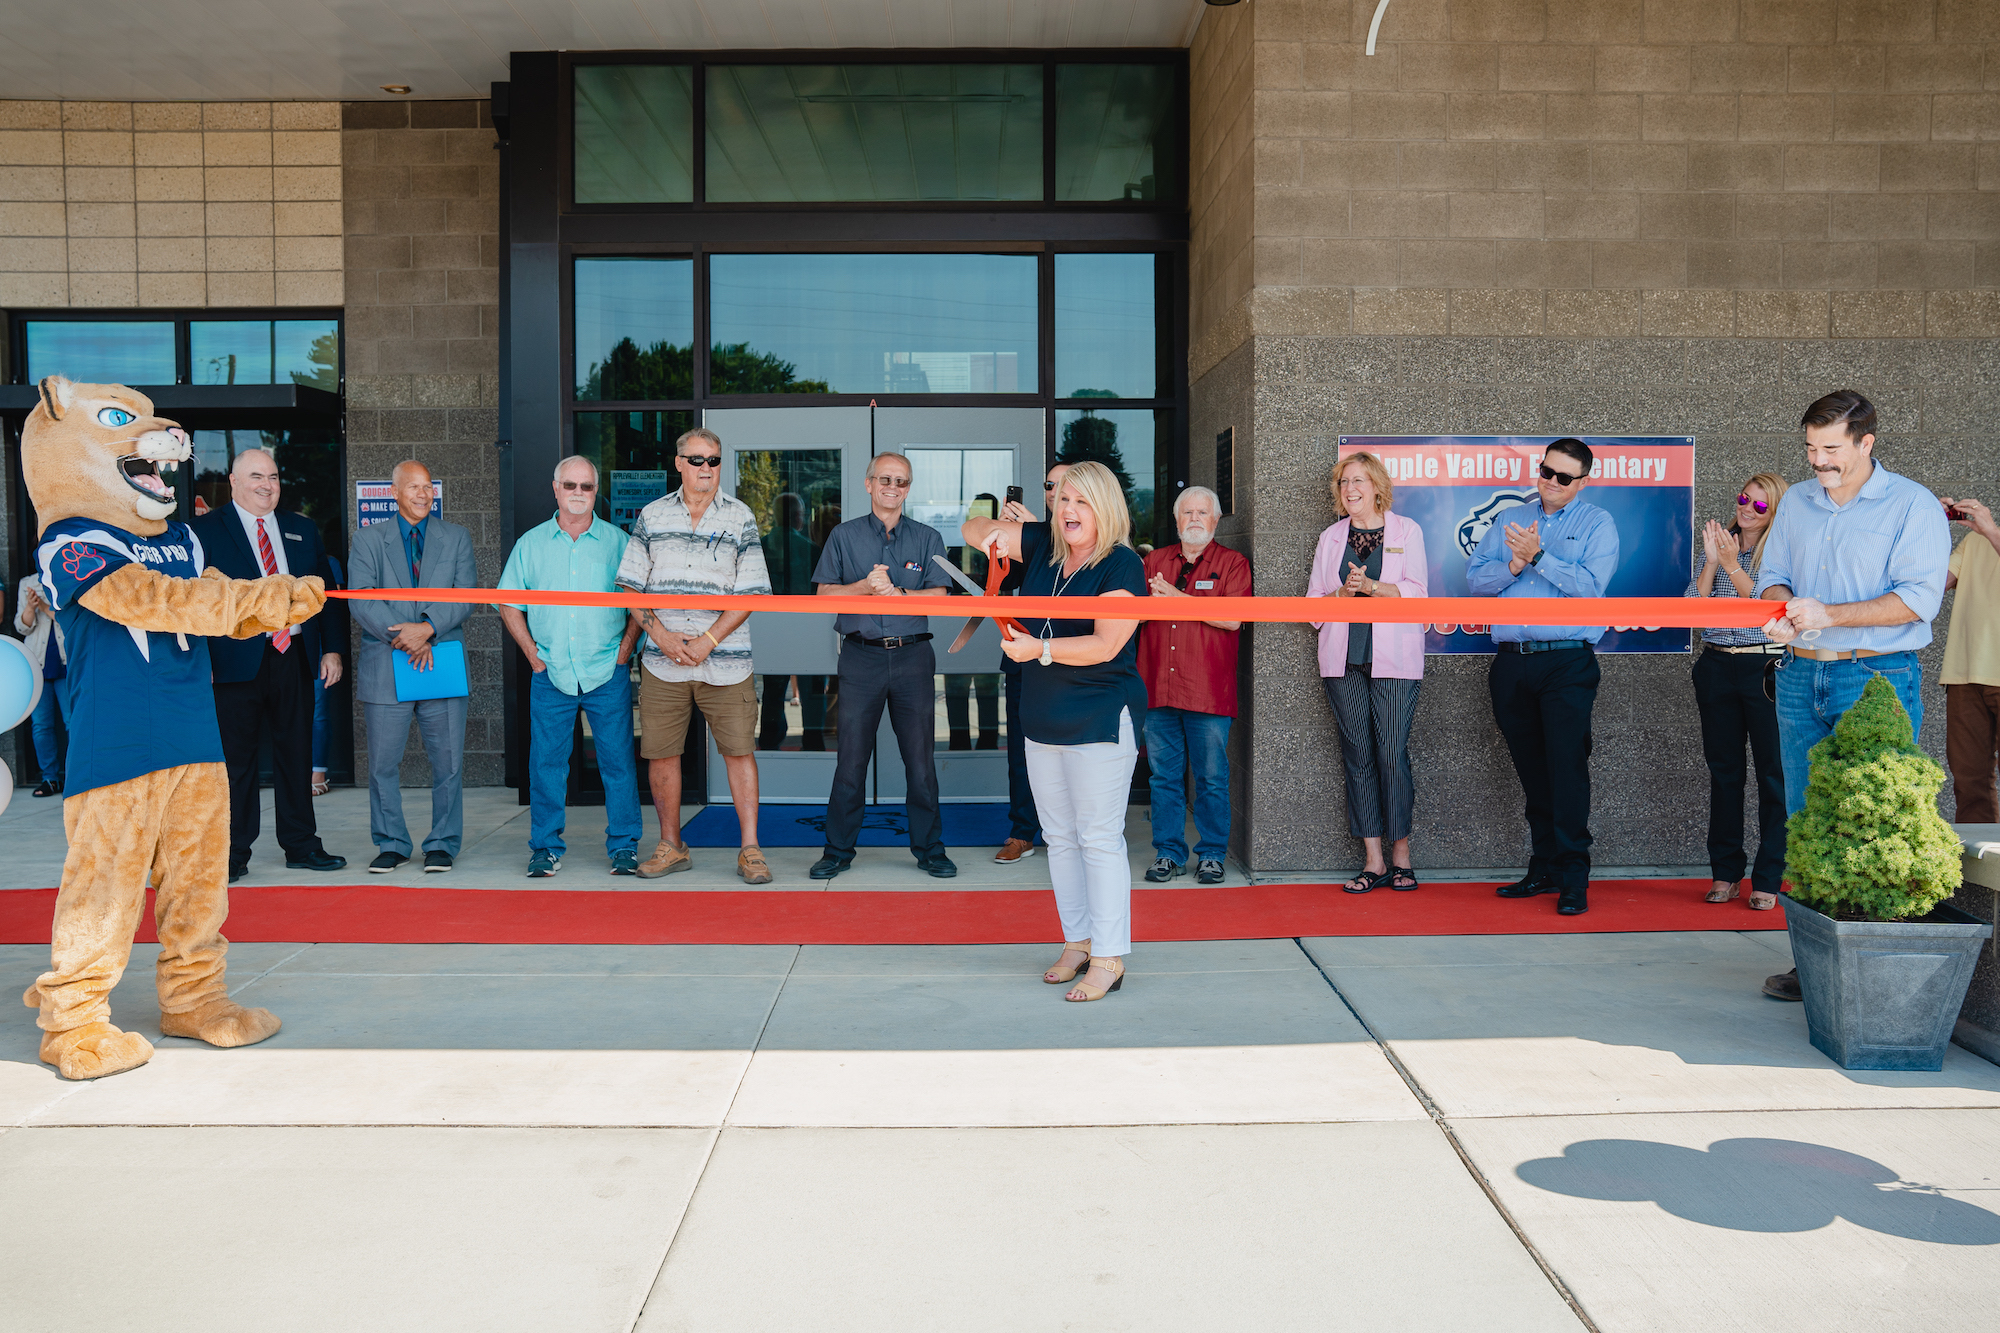 Apple Valley Ribbon Cutting Ceremony